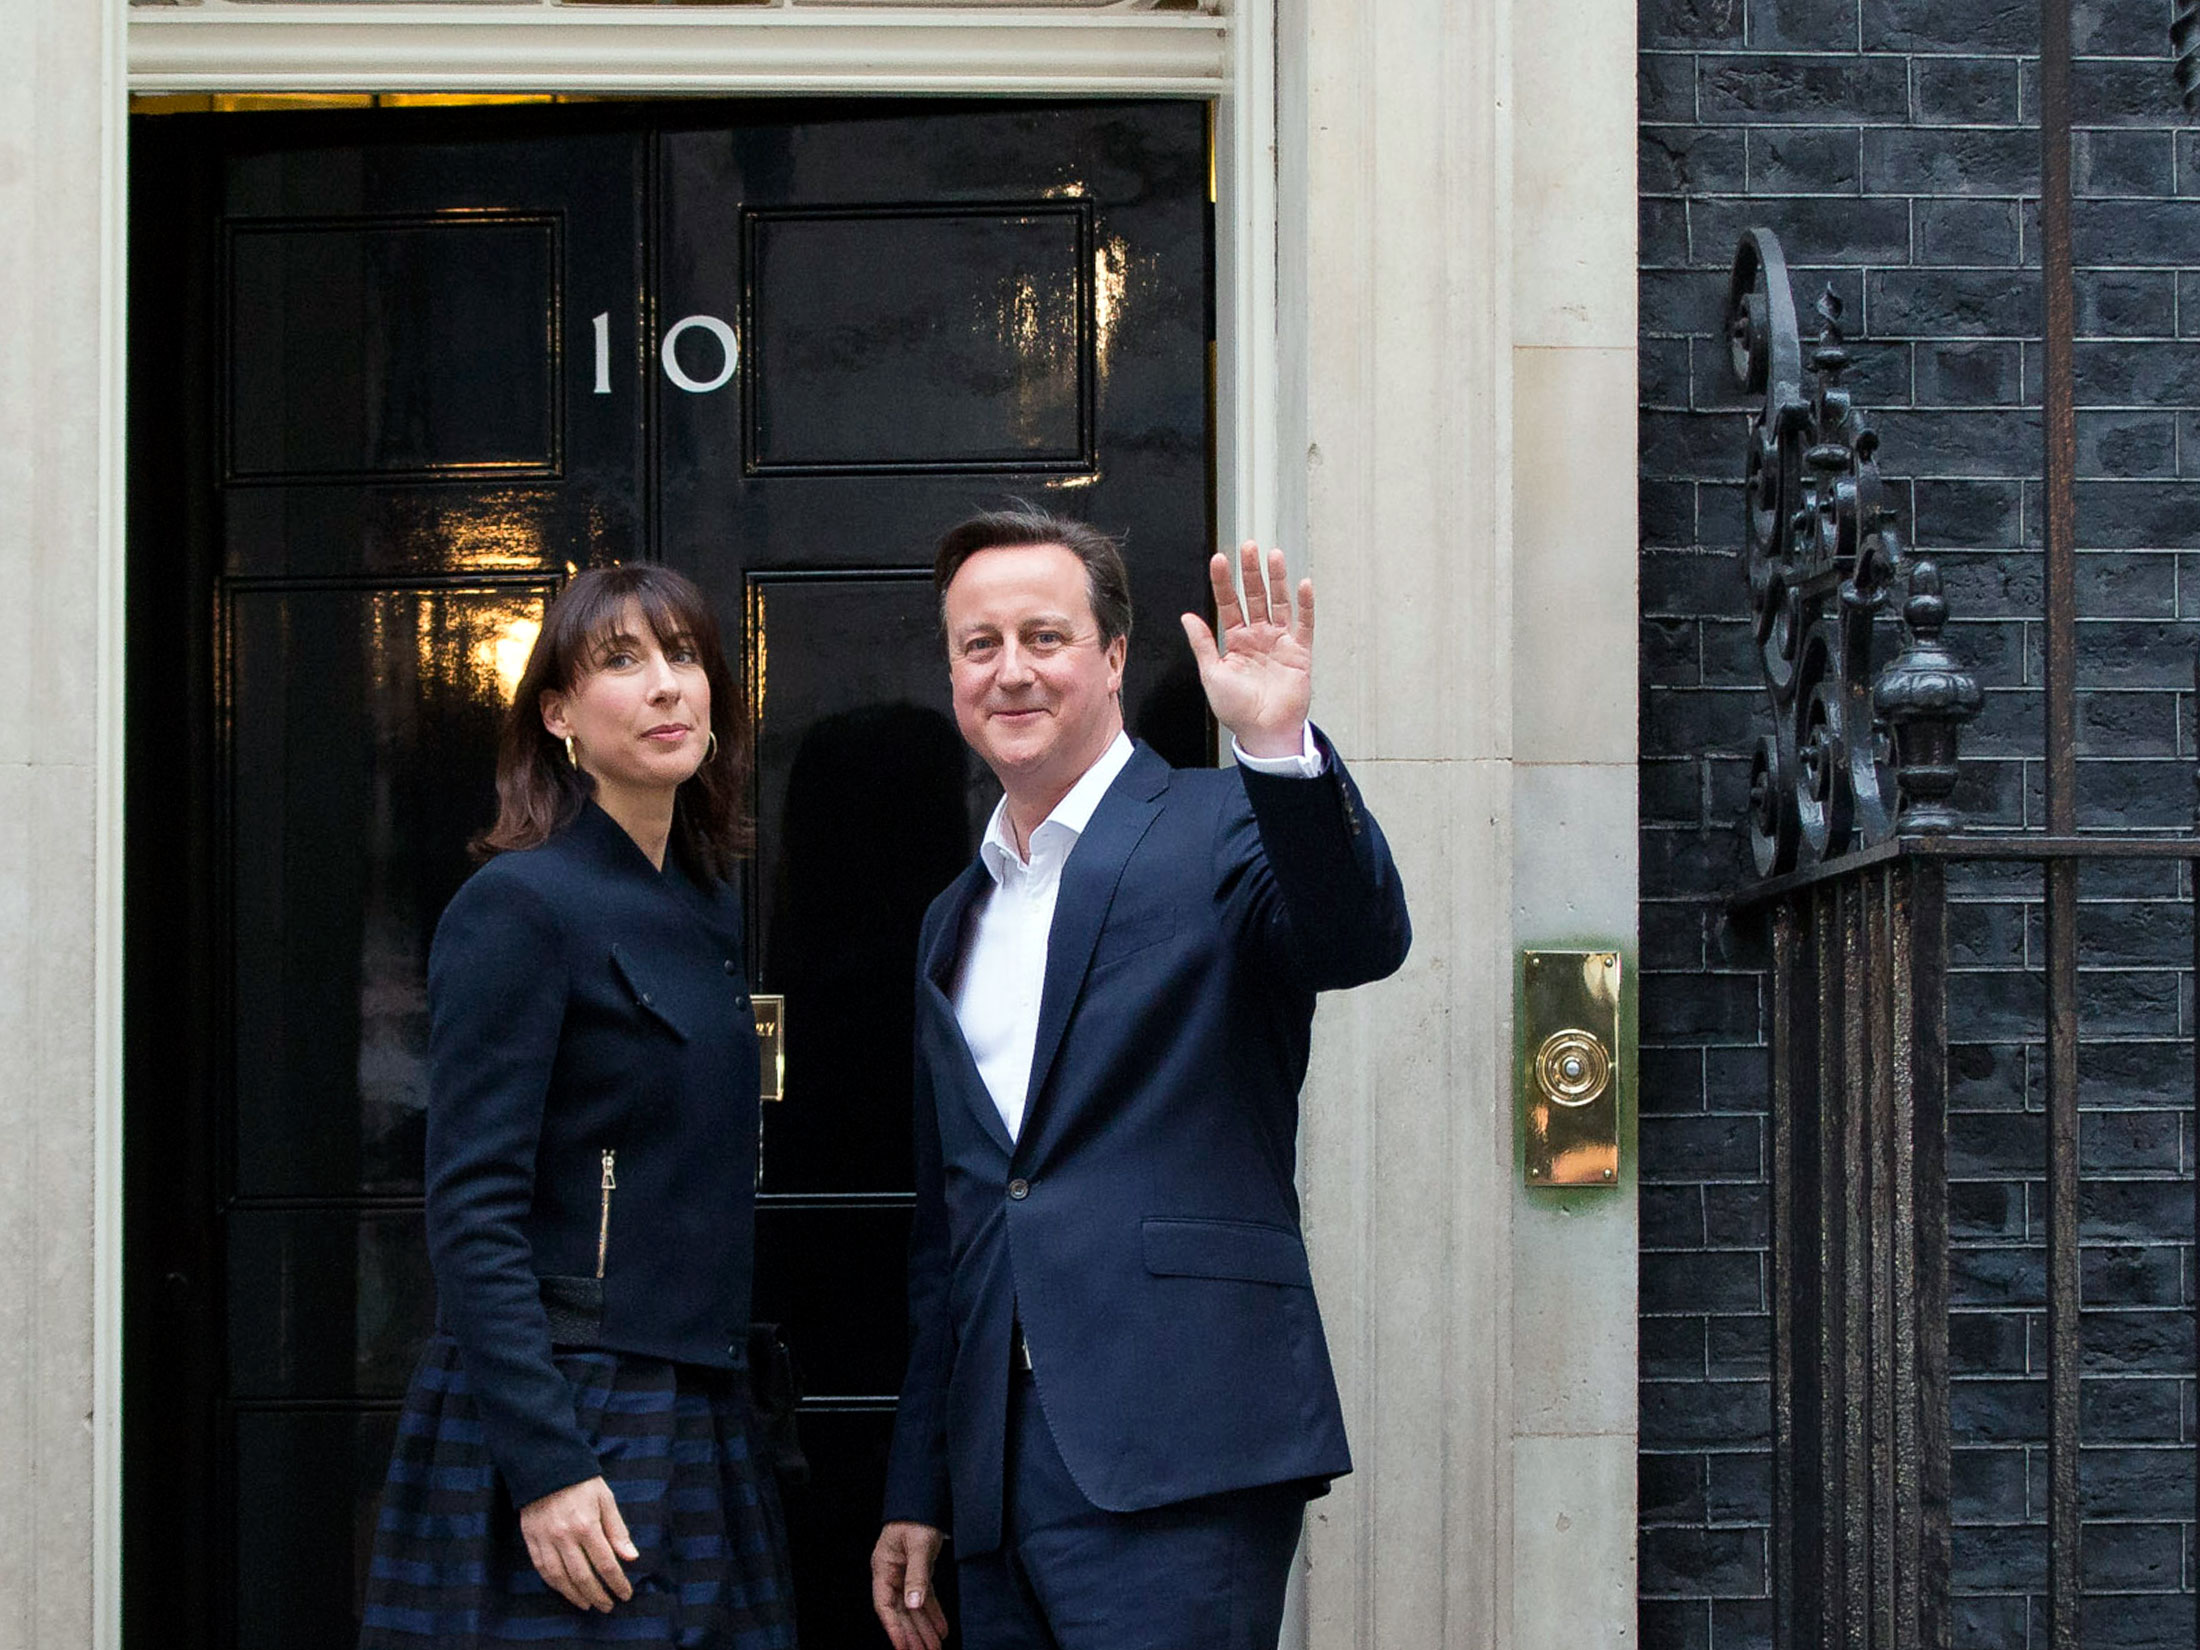 Returning to Number 10